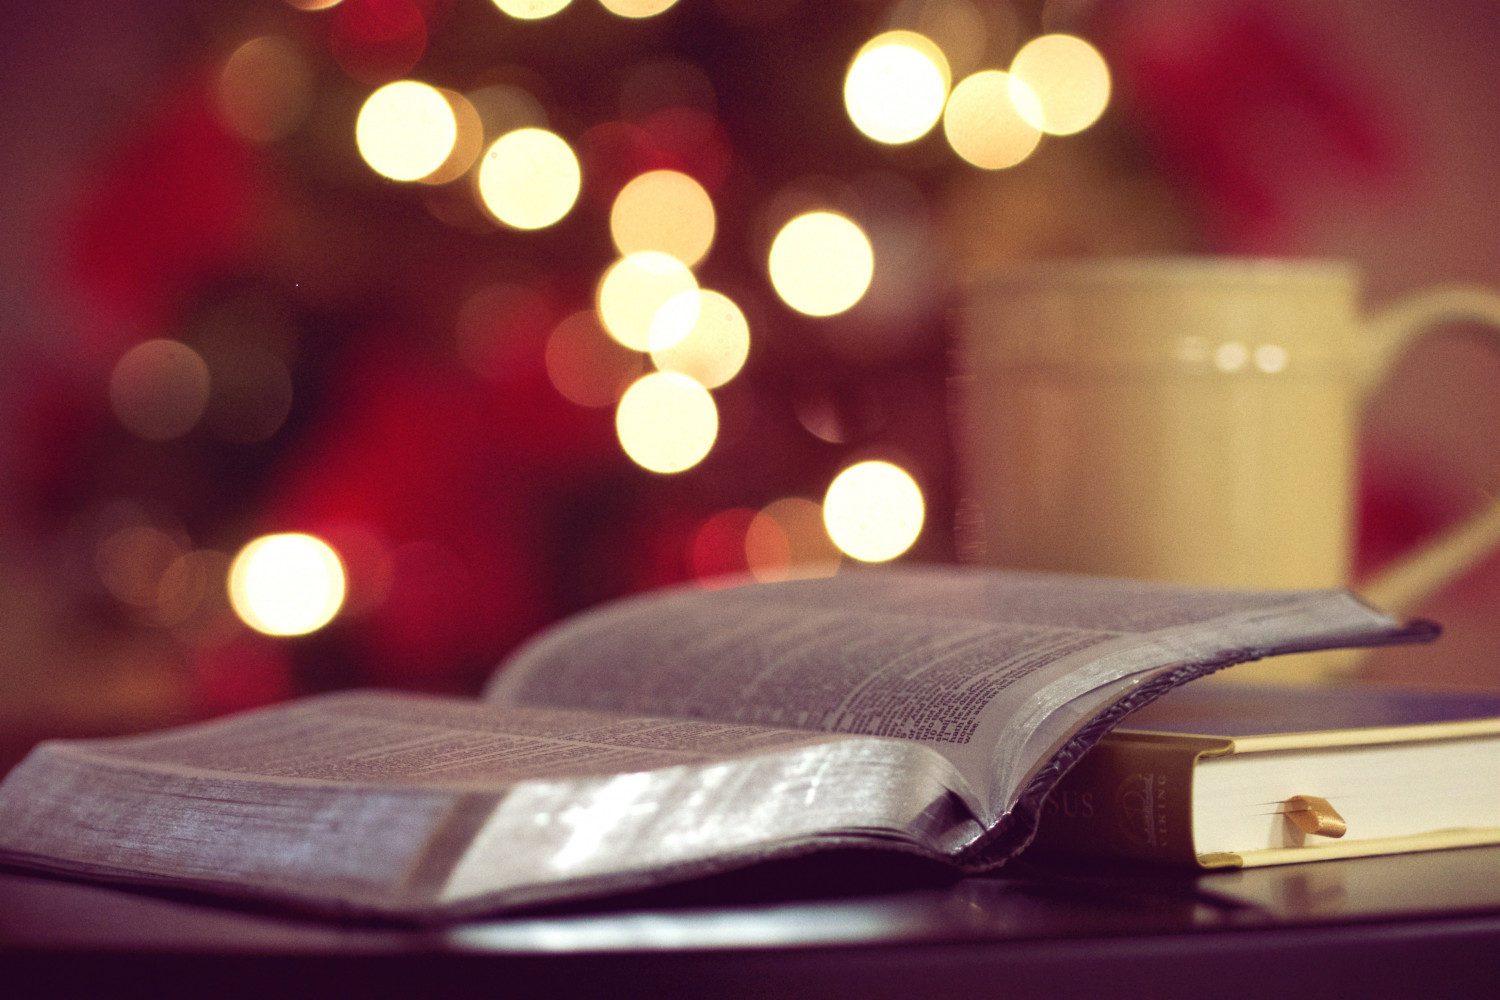 Bible, Lights and Mug of coffee